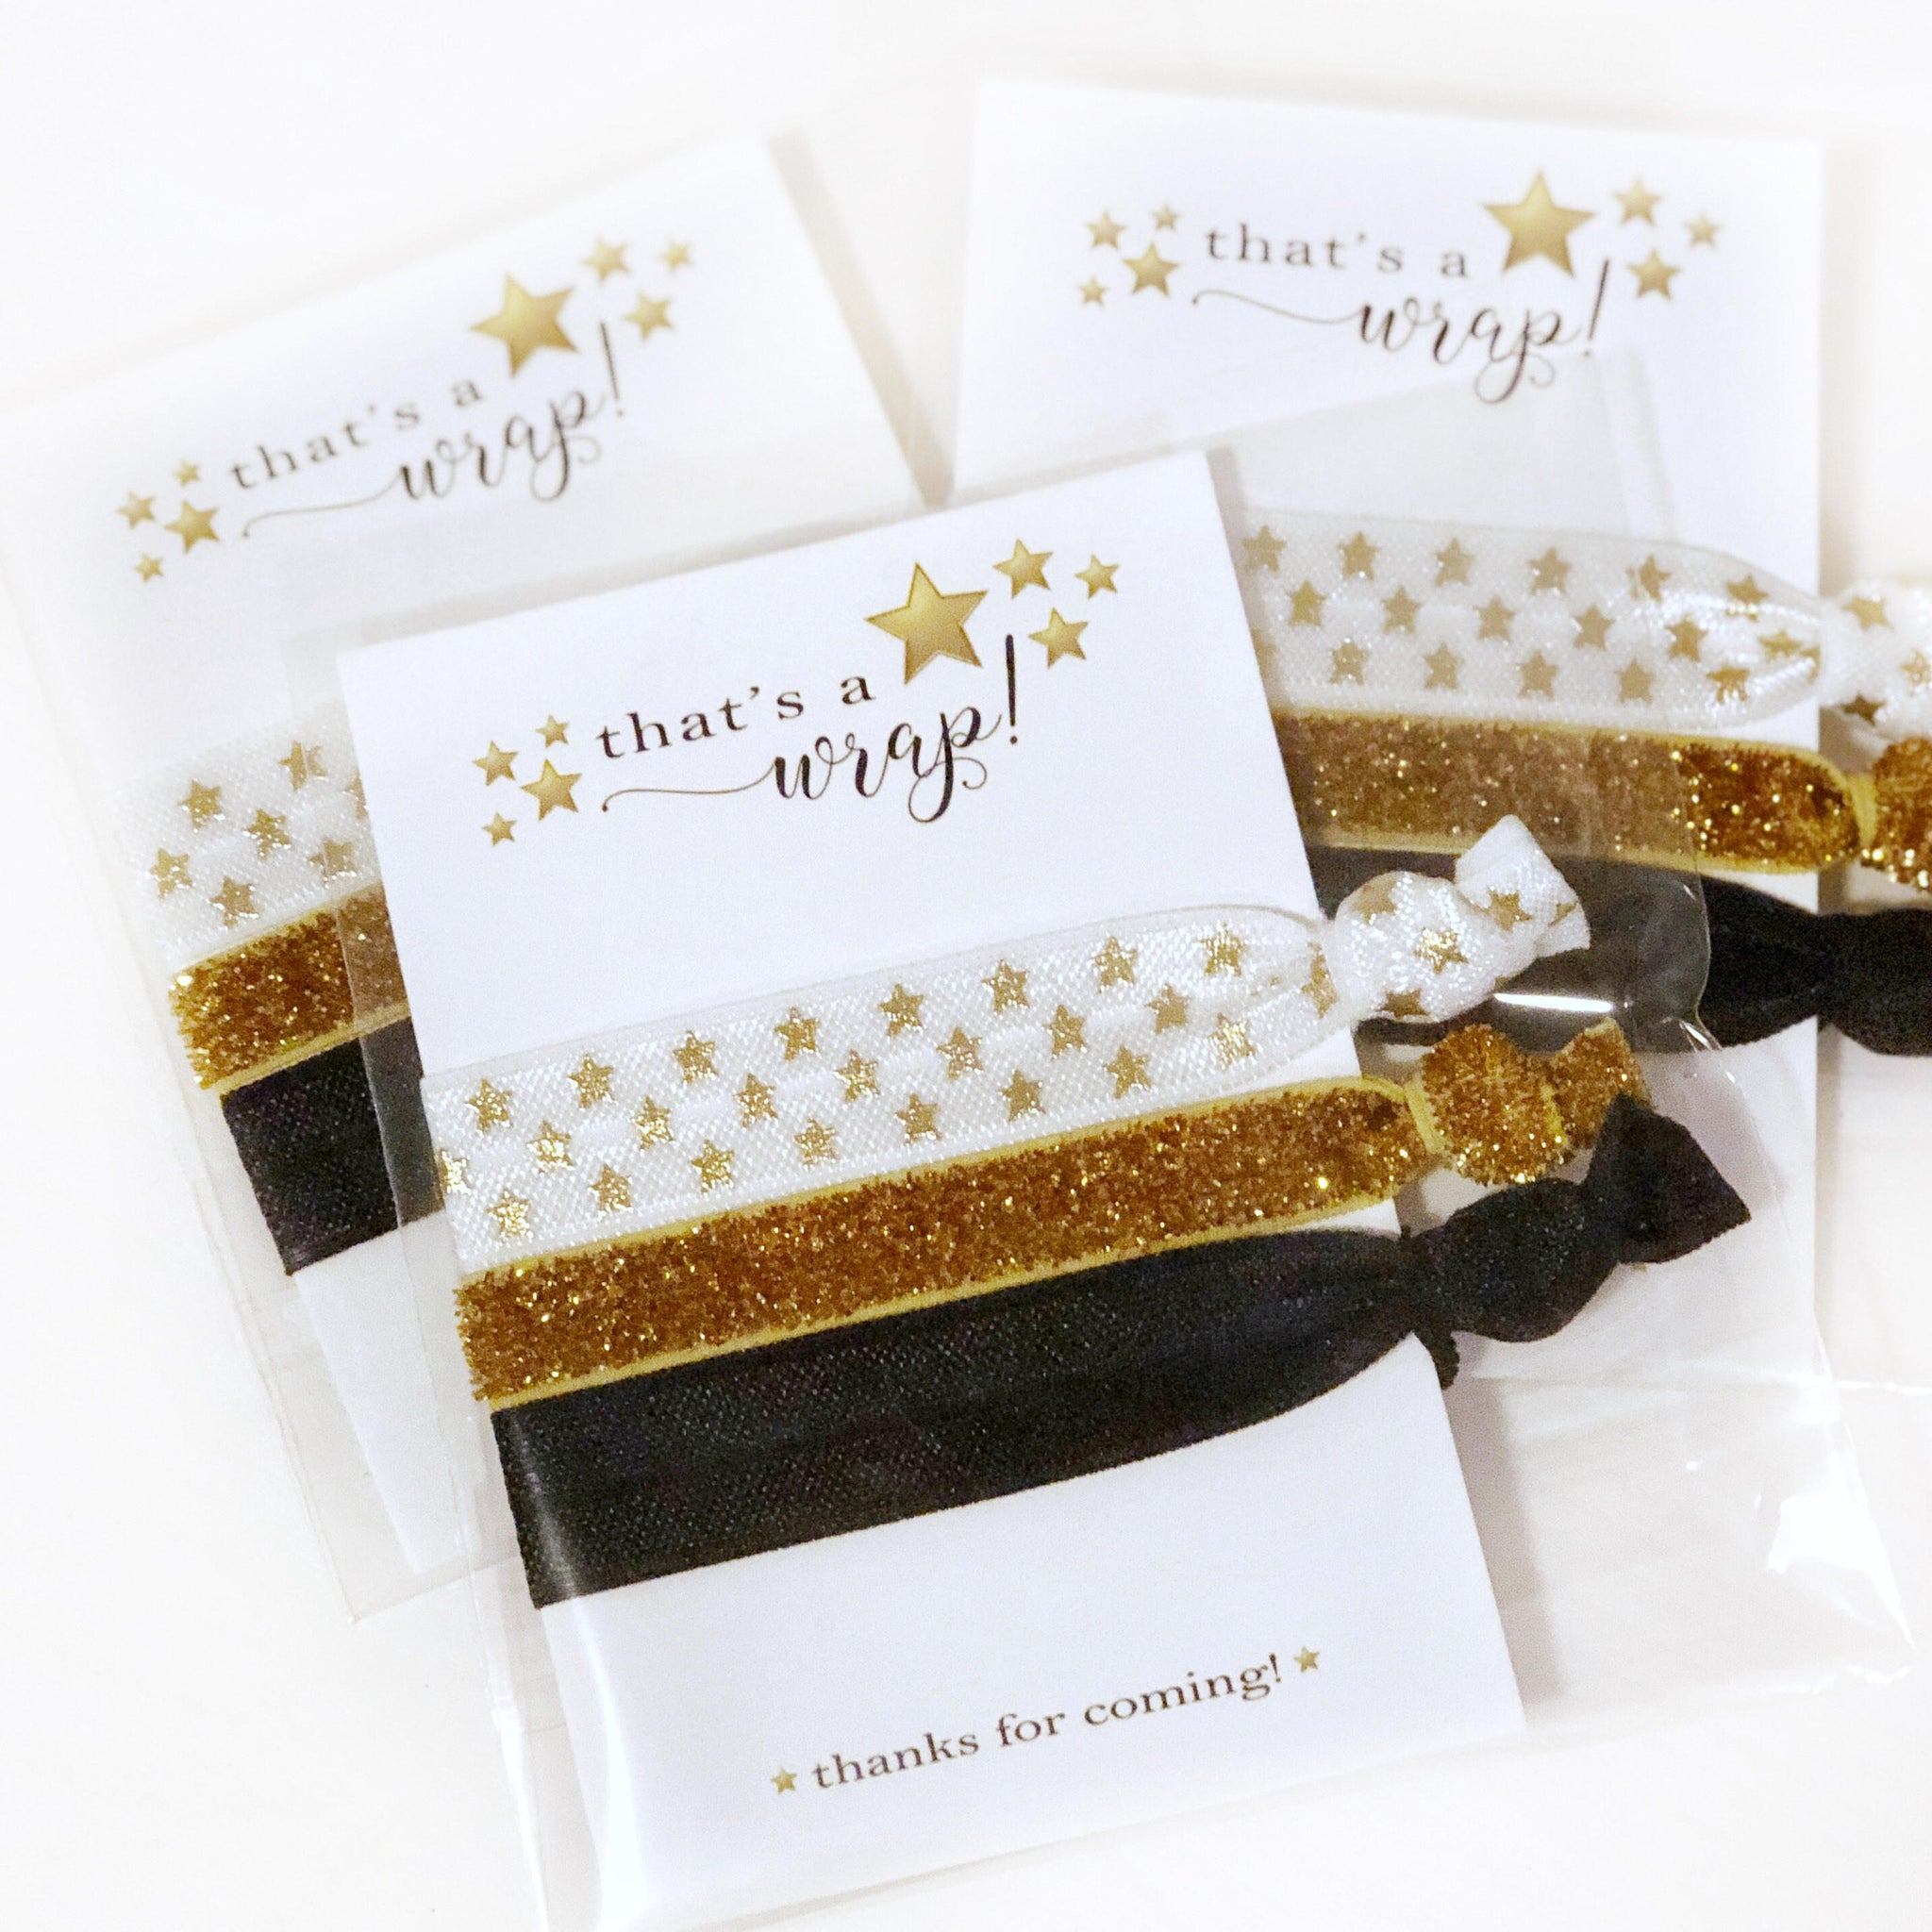 Movie Themed Party Favors - @PlumPolkaDot